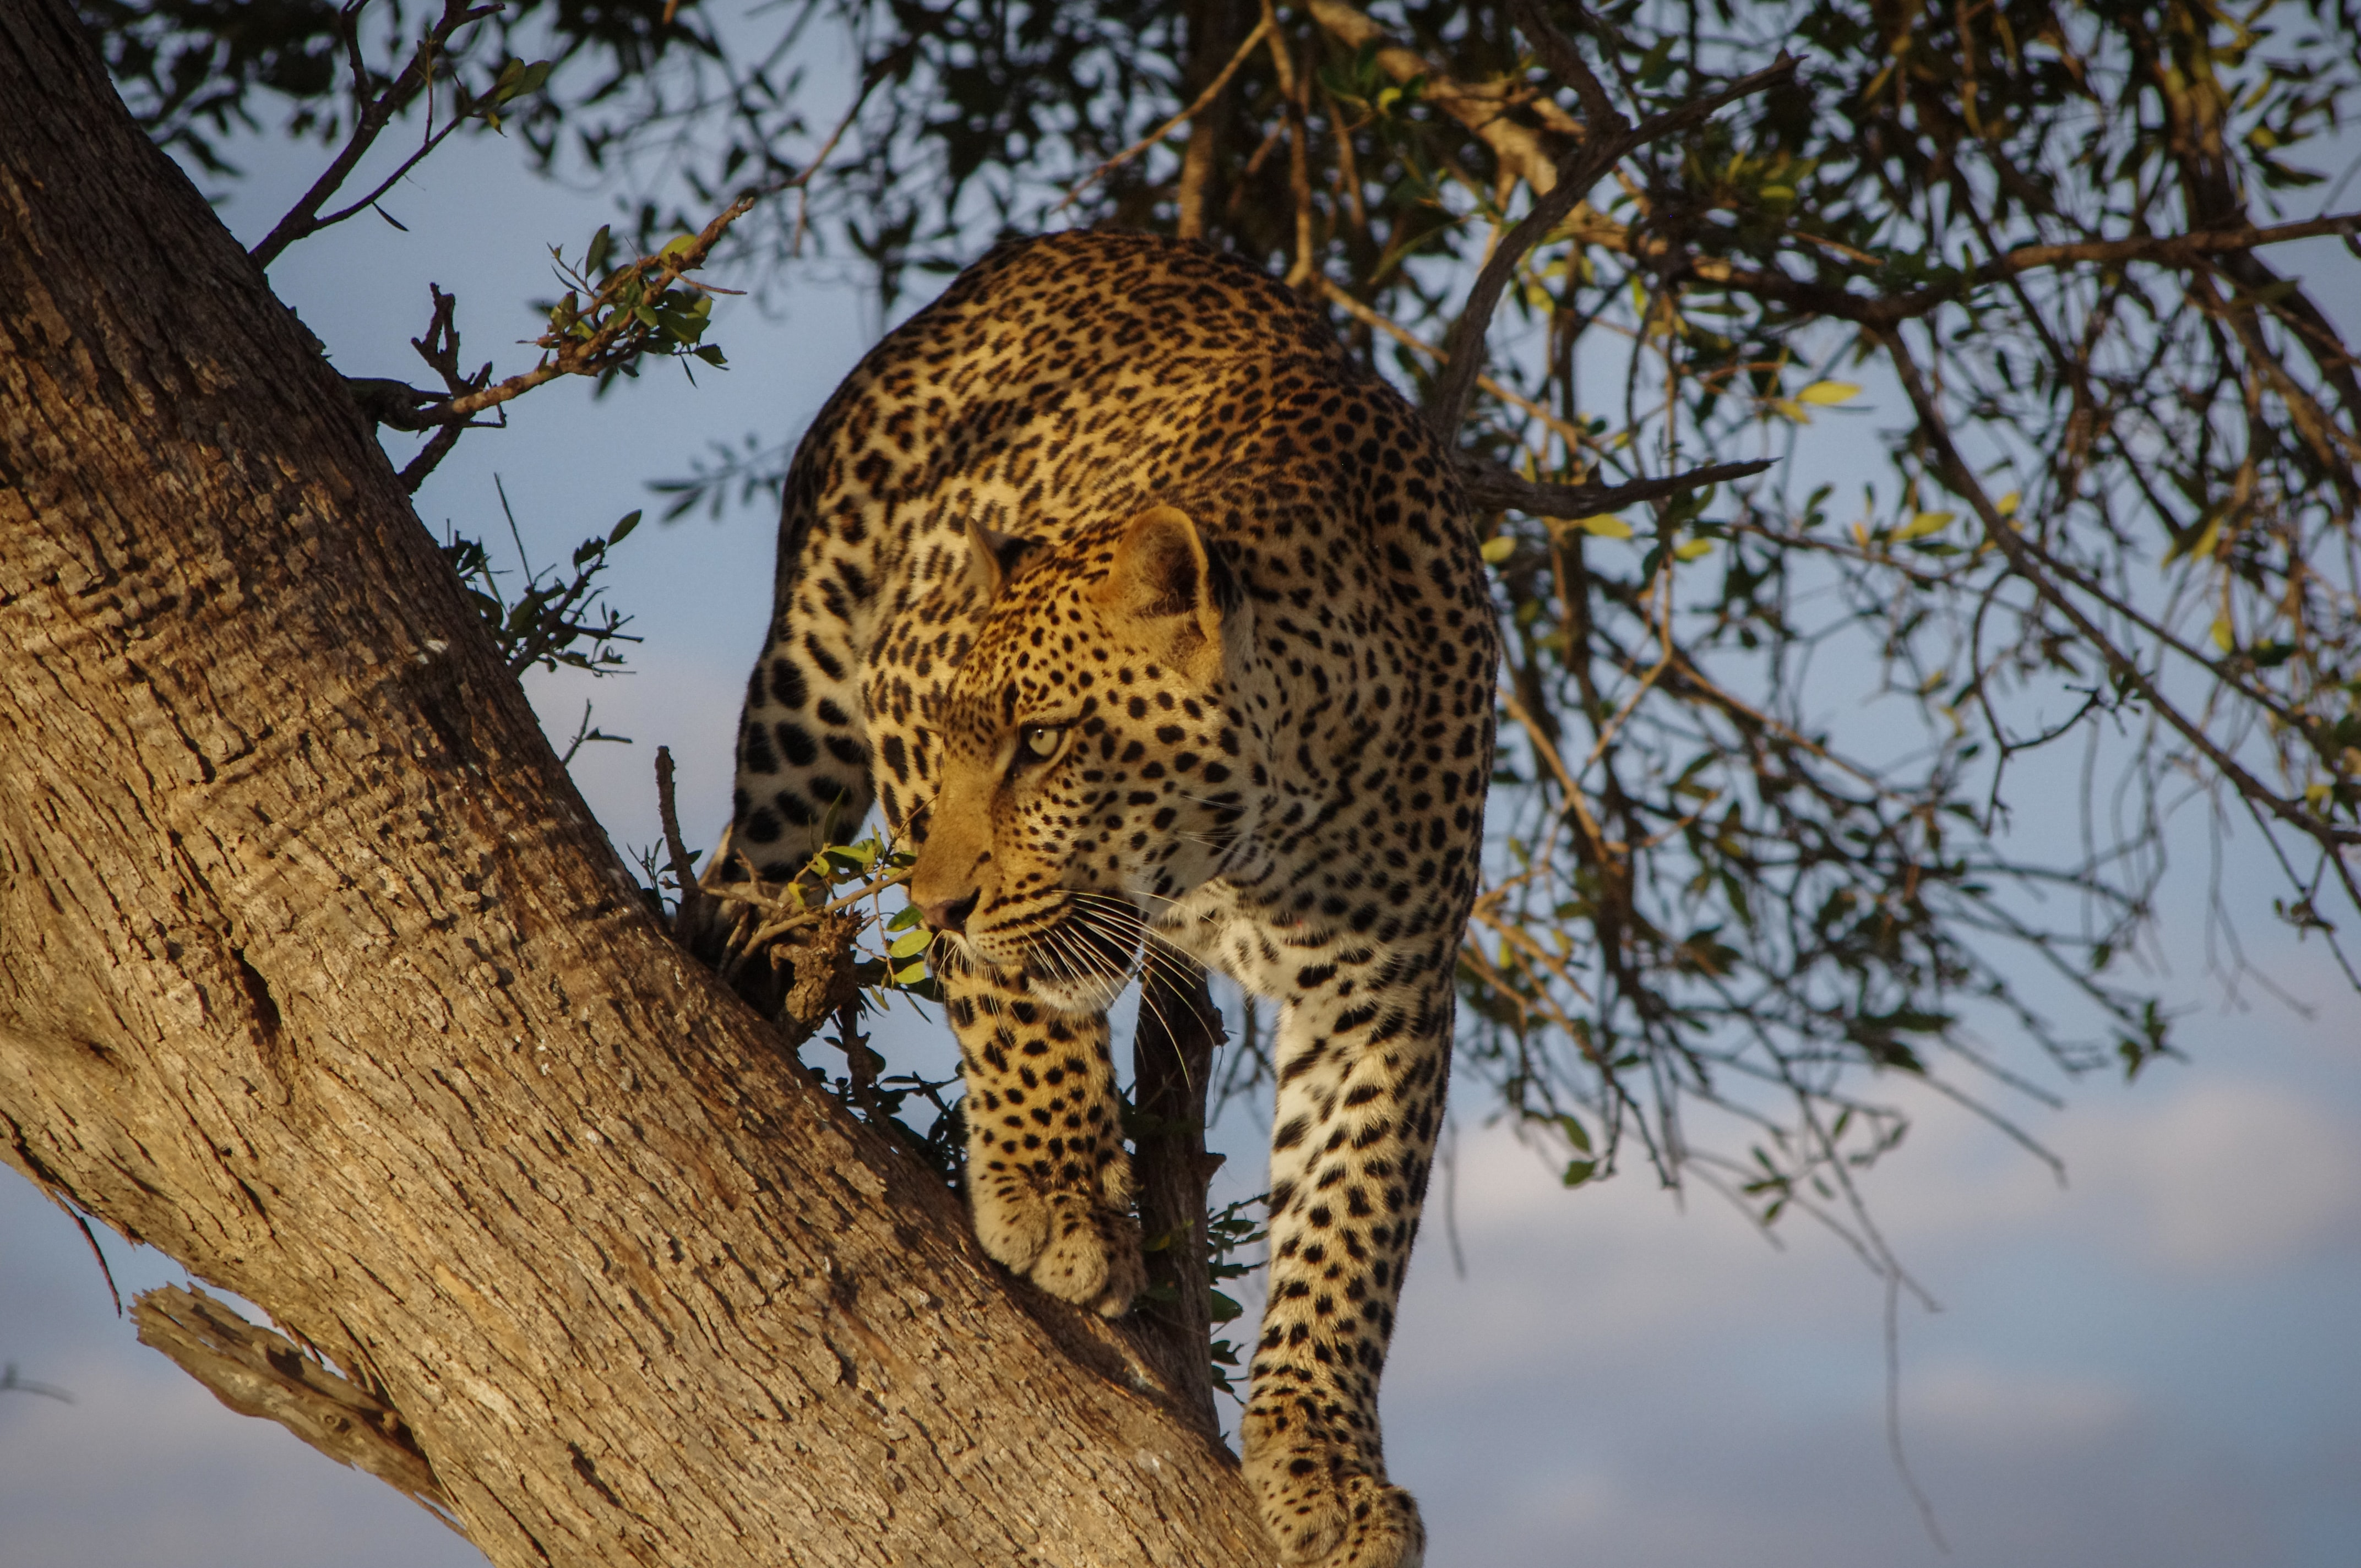 Leopard perched in a tree stalks its prey from above in Masai Mara Game Reserve